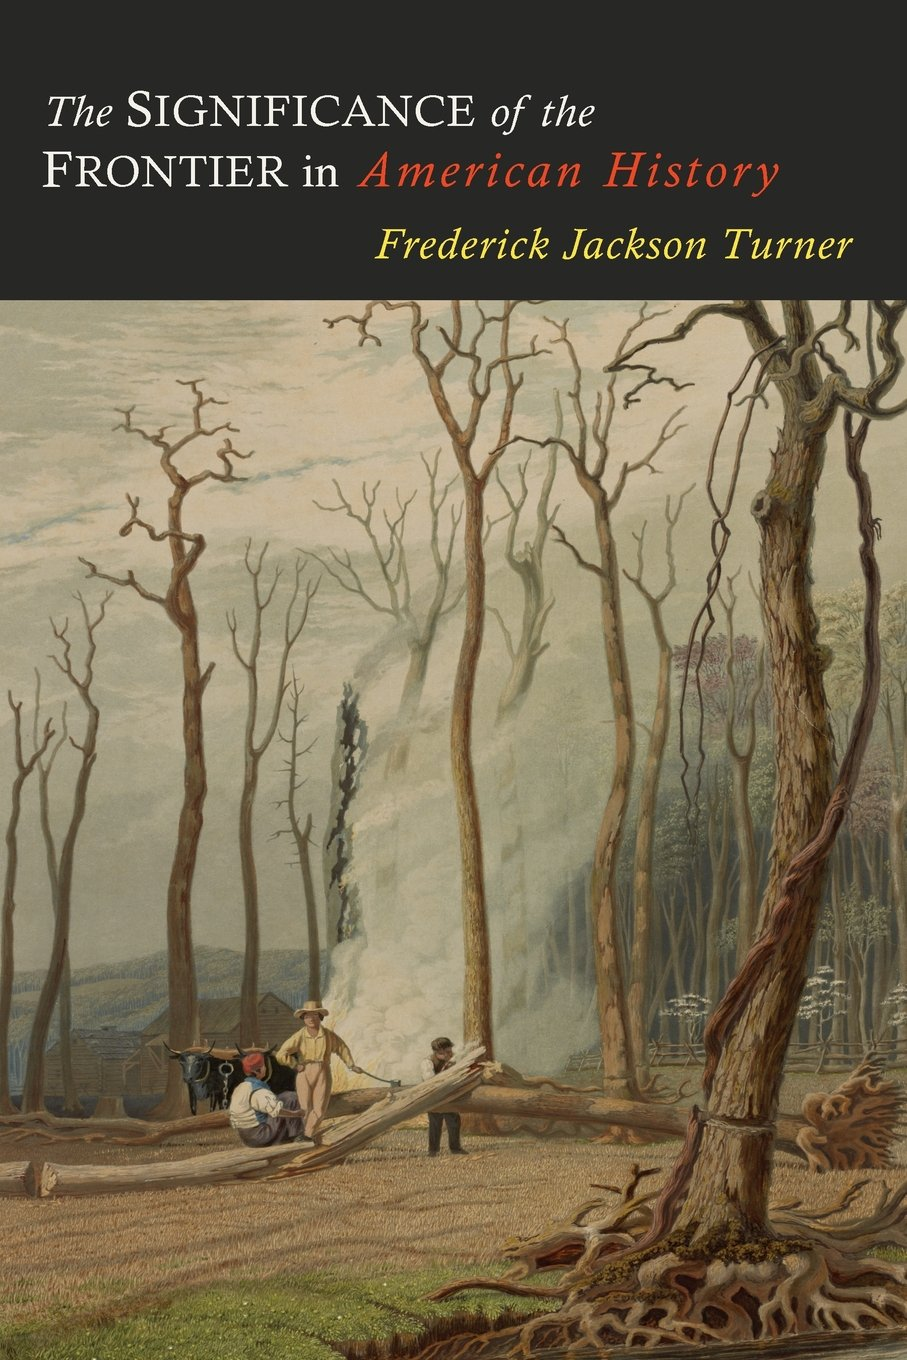 frederick turners frontier thesis Frederick jackson turner's essay, the significance of the frontier in american history, written in 1893, is perhaps the most influential essay ever read at the american historical association's annual conference.